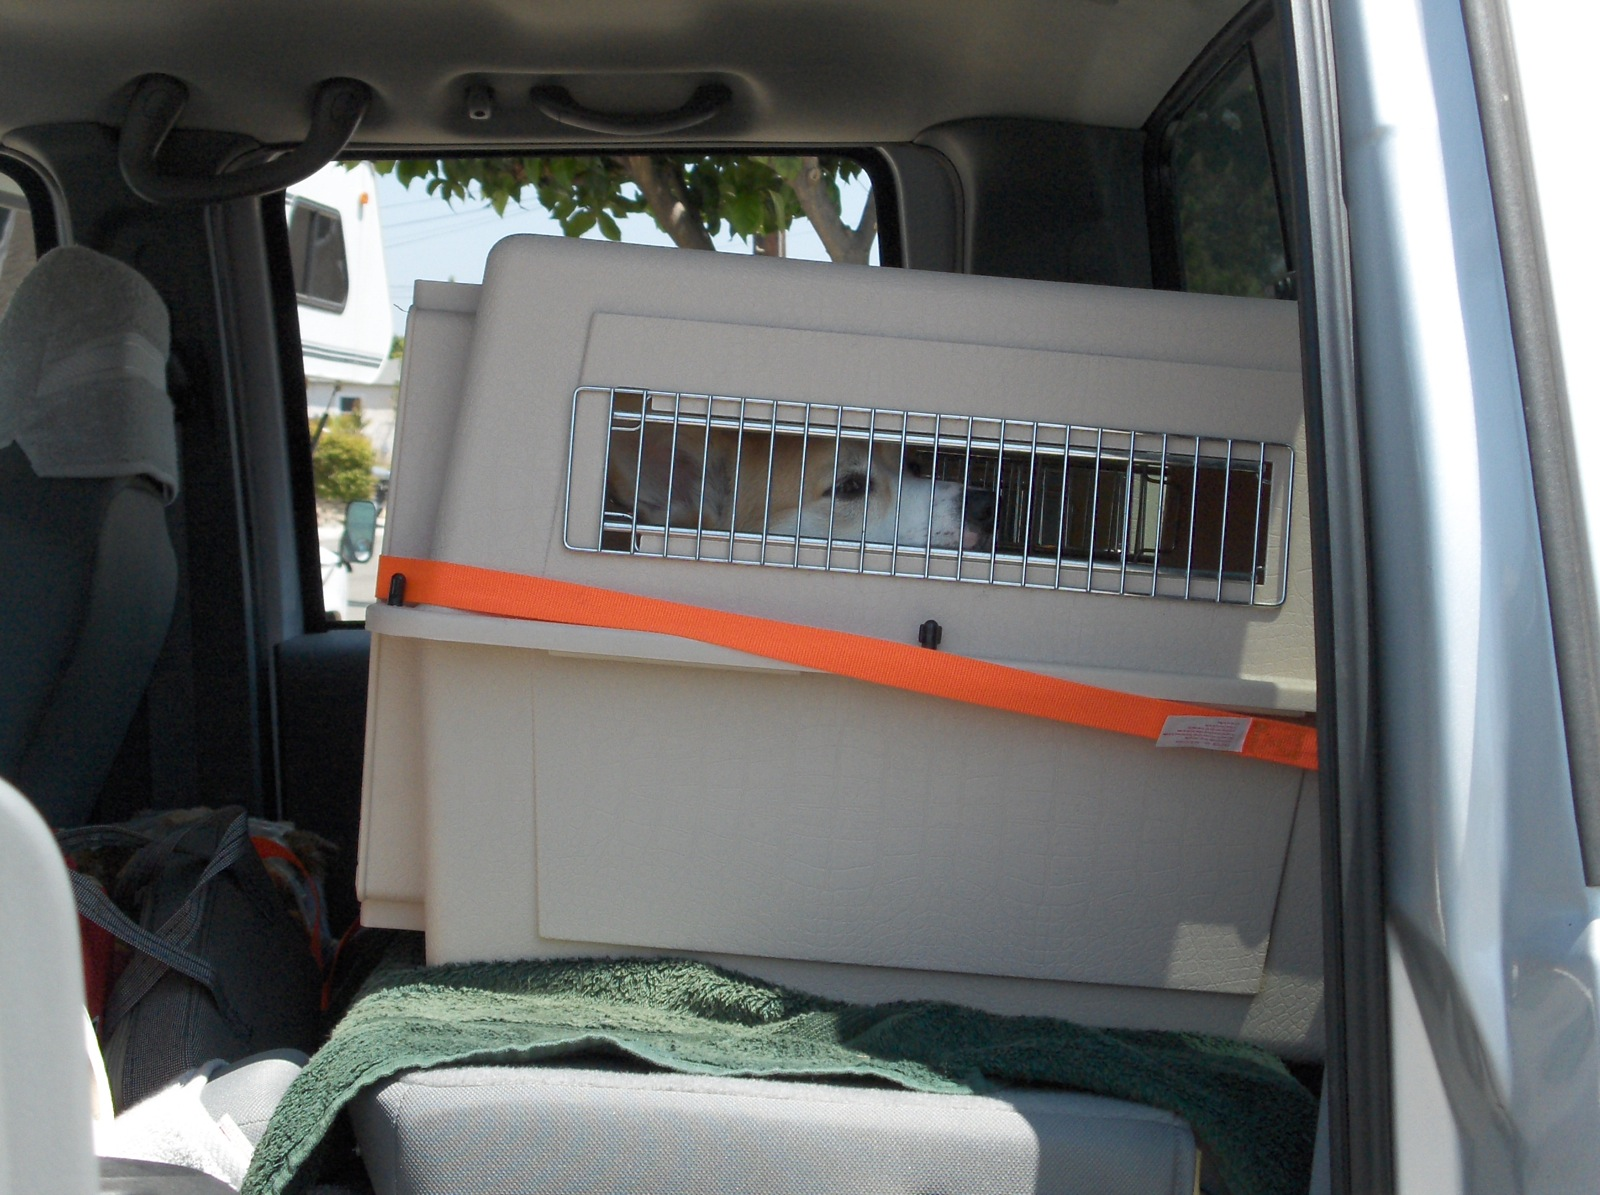 Click image for larger version  Name:HPIM2559 Dog crates in F-250.jpg Views:58 Size:442.5 KB ID:198287